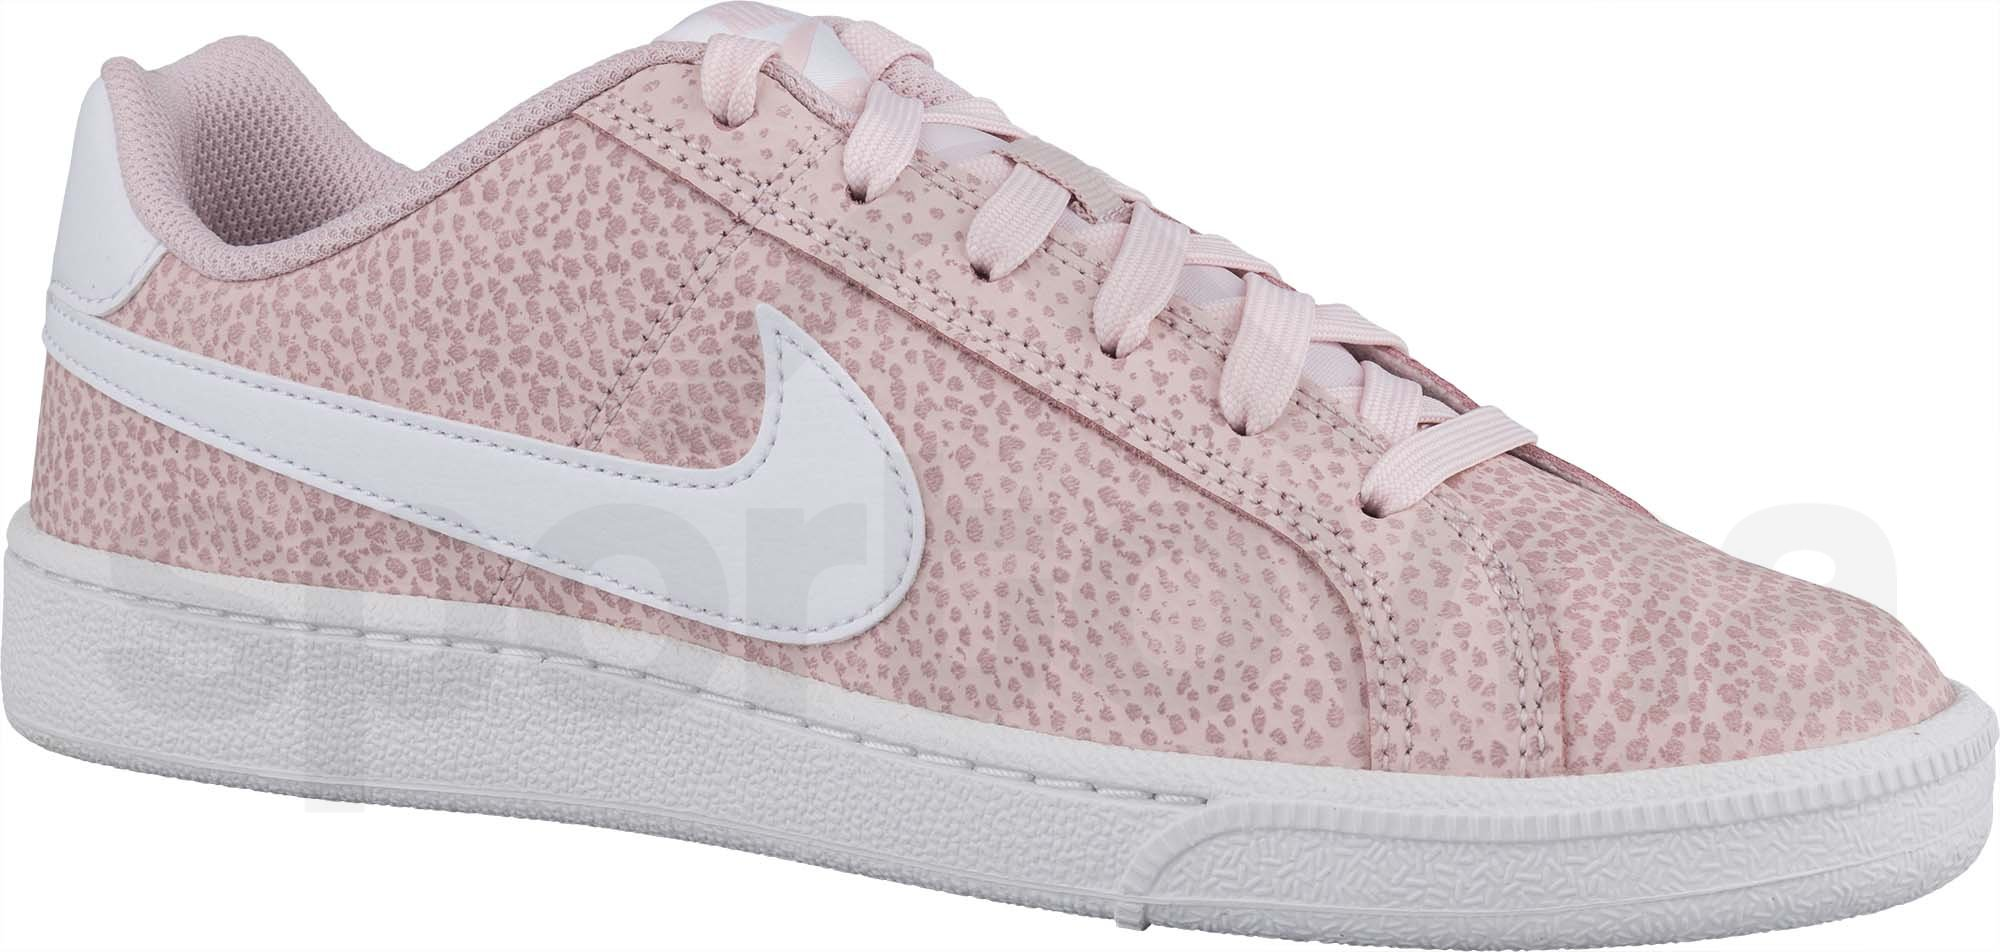 nike-cd5406-600-court-royale-premium_4